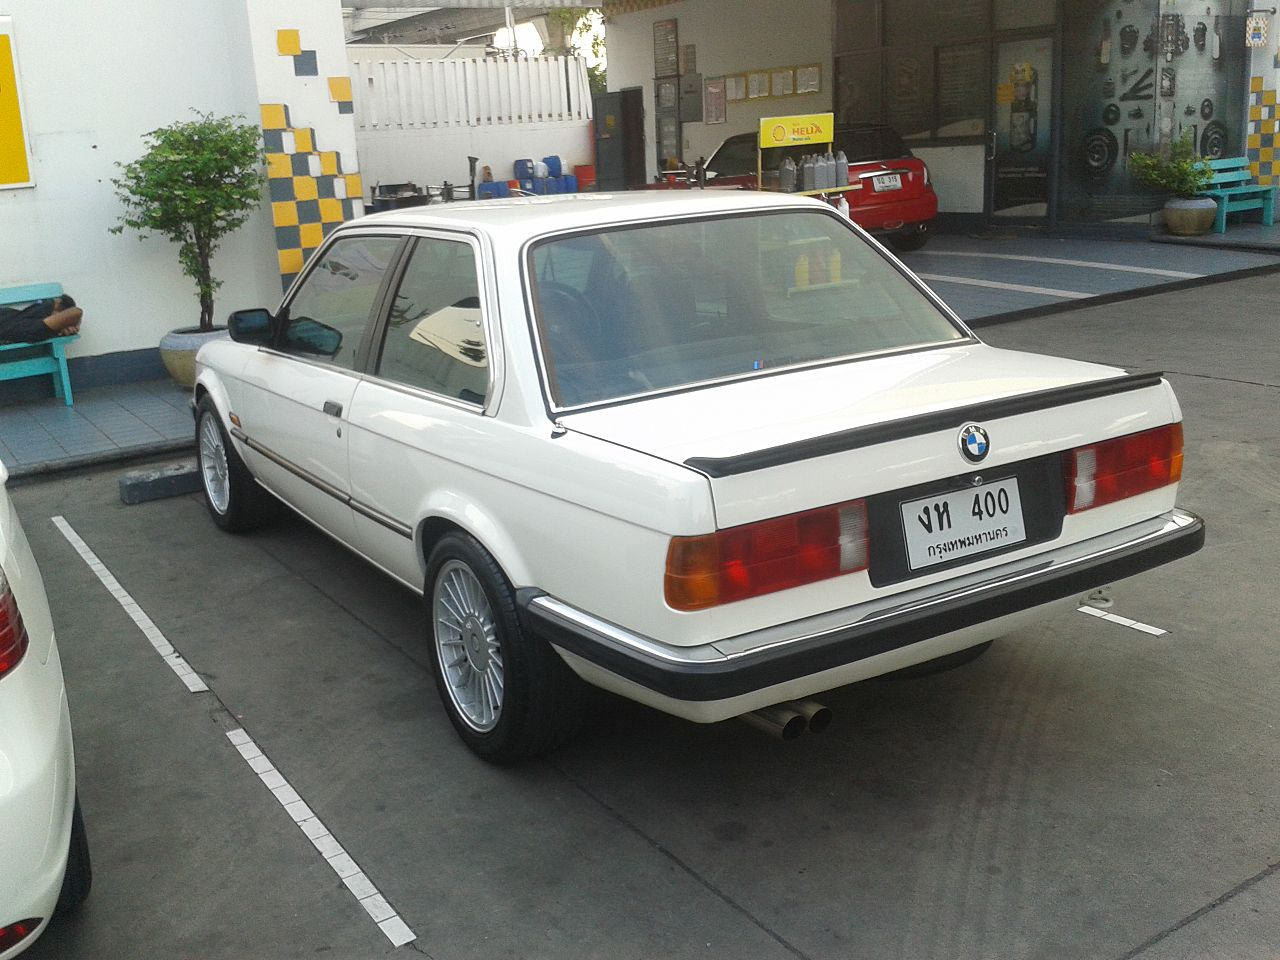 File Bmw 316 Alpina E30 Coupe In Thailand 03 Jpg Wikimedia Commons